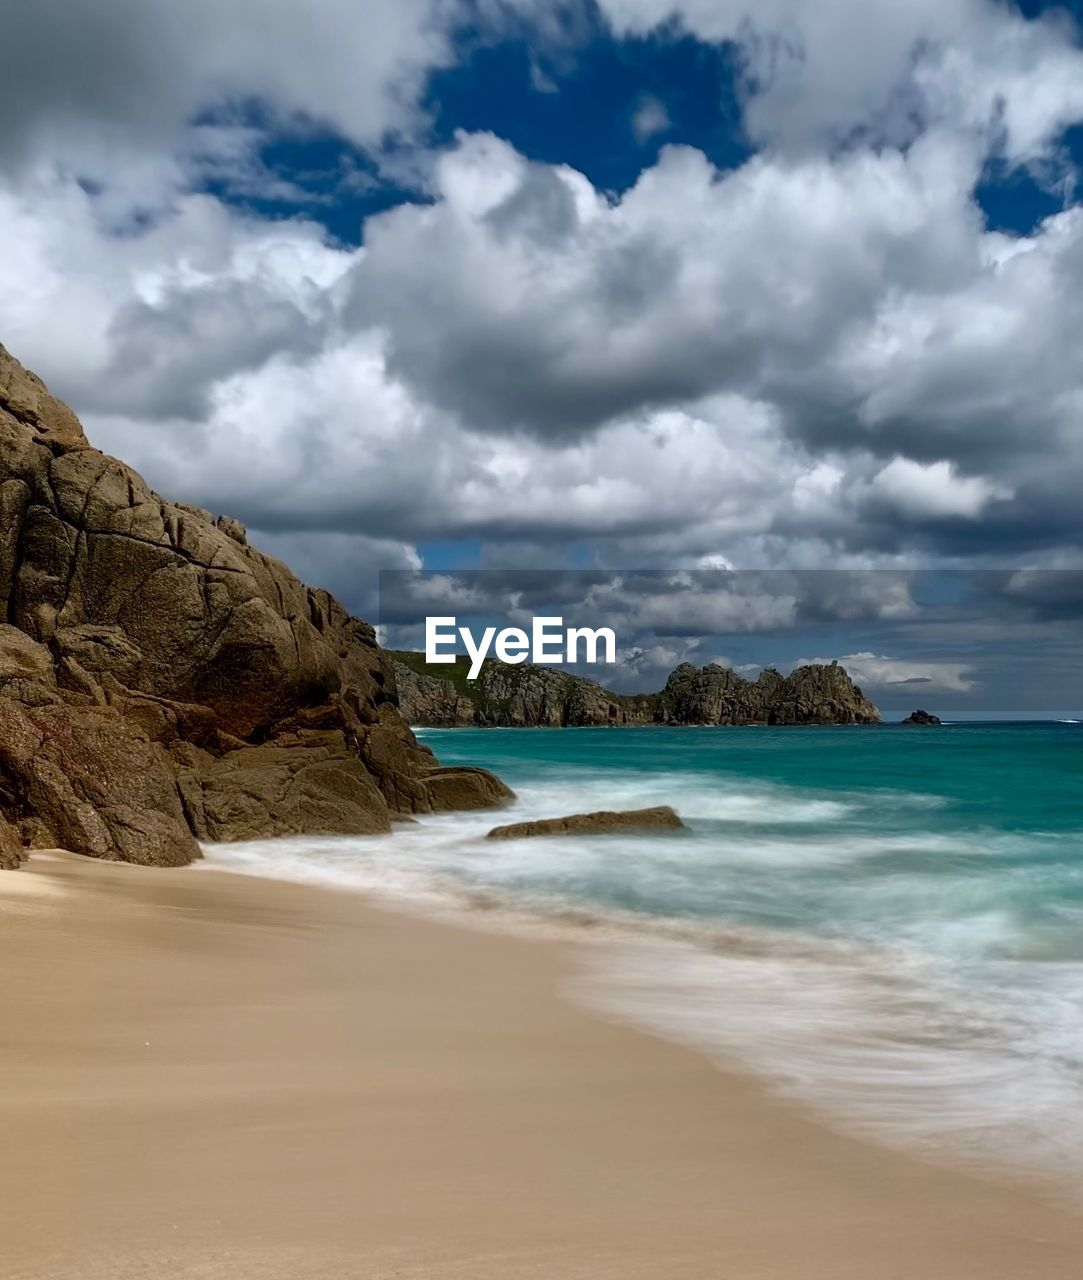 cloud - sky, land, sky, beach, water, sea, beauty in nature, scenics - nature, nature, rock, tranquility, day, rock - object, motion, sand, tranquil scene, solid, no people, rock formation, outdoors